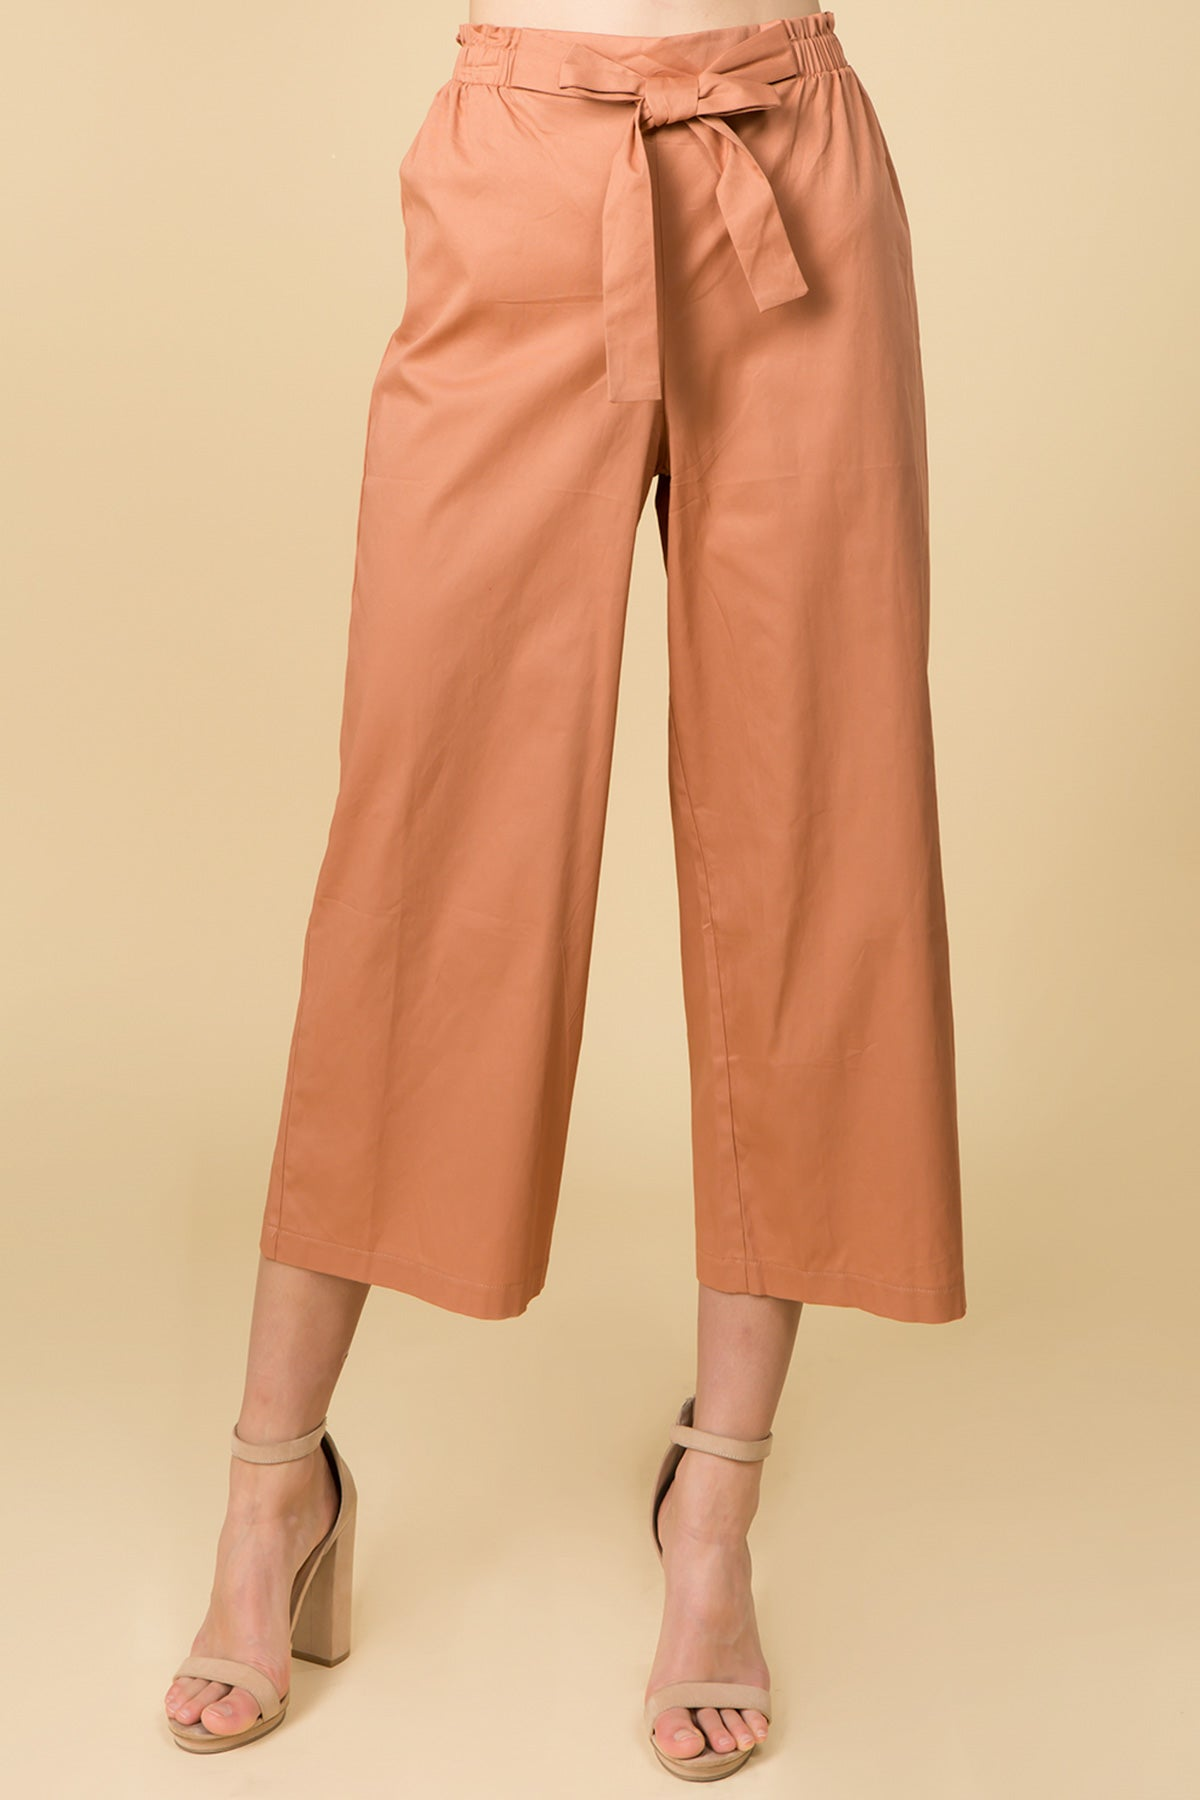 HIGH WAIST MIDI PANTS WITH WAIST TIES